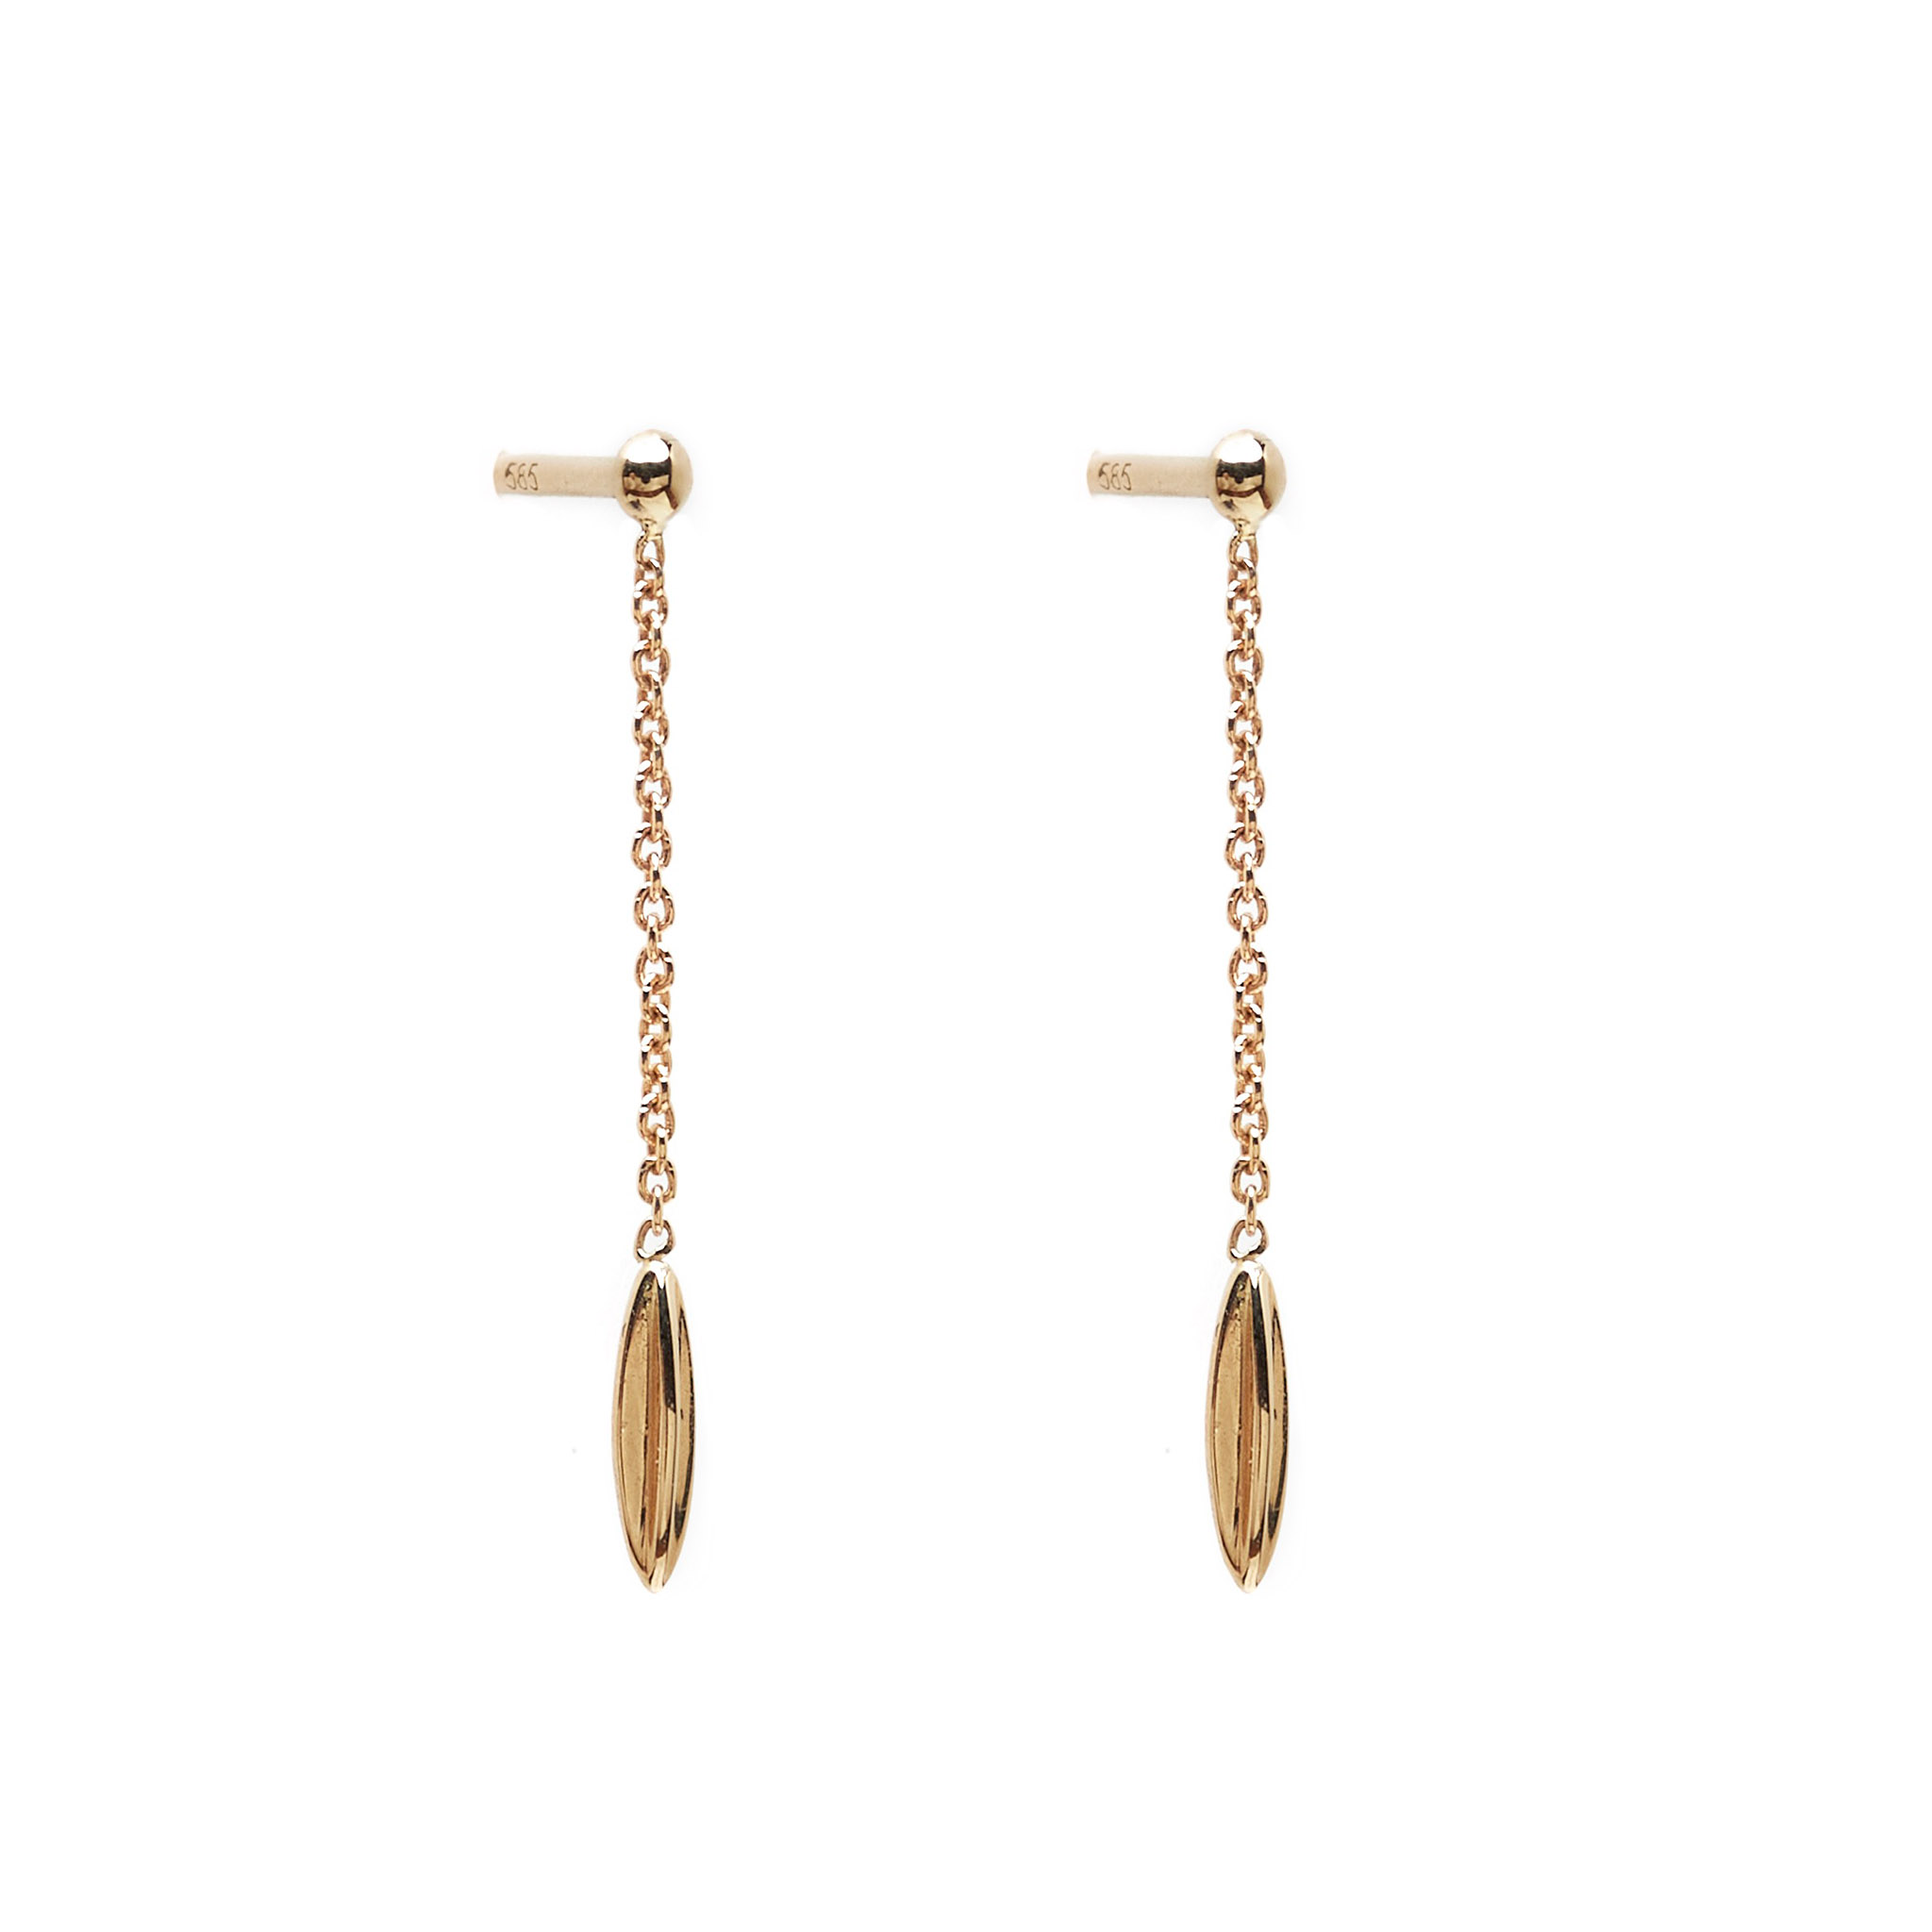 Cowrie Earrings, 14k Gold by The Straits Finery on curated-crowd.com